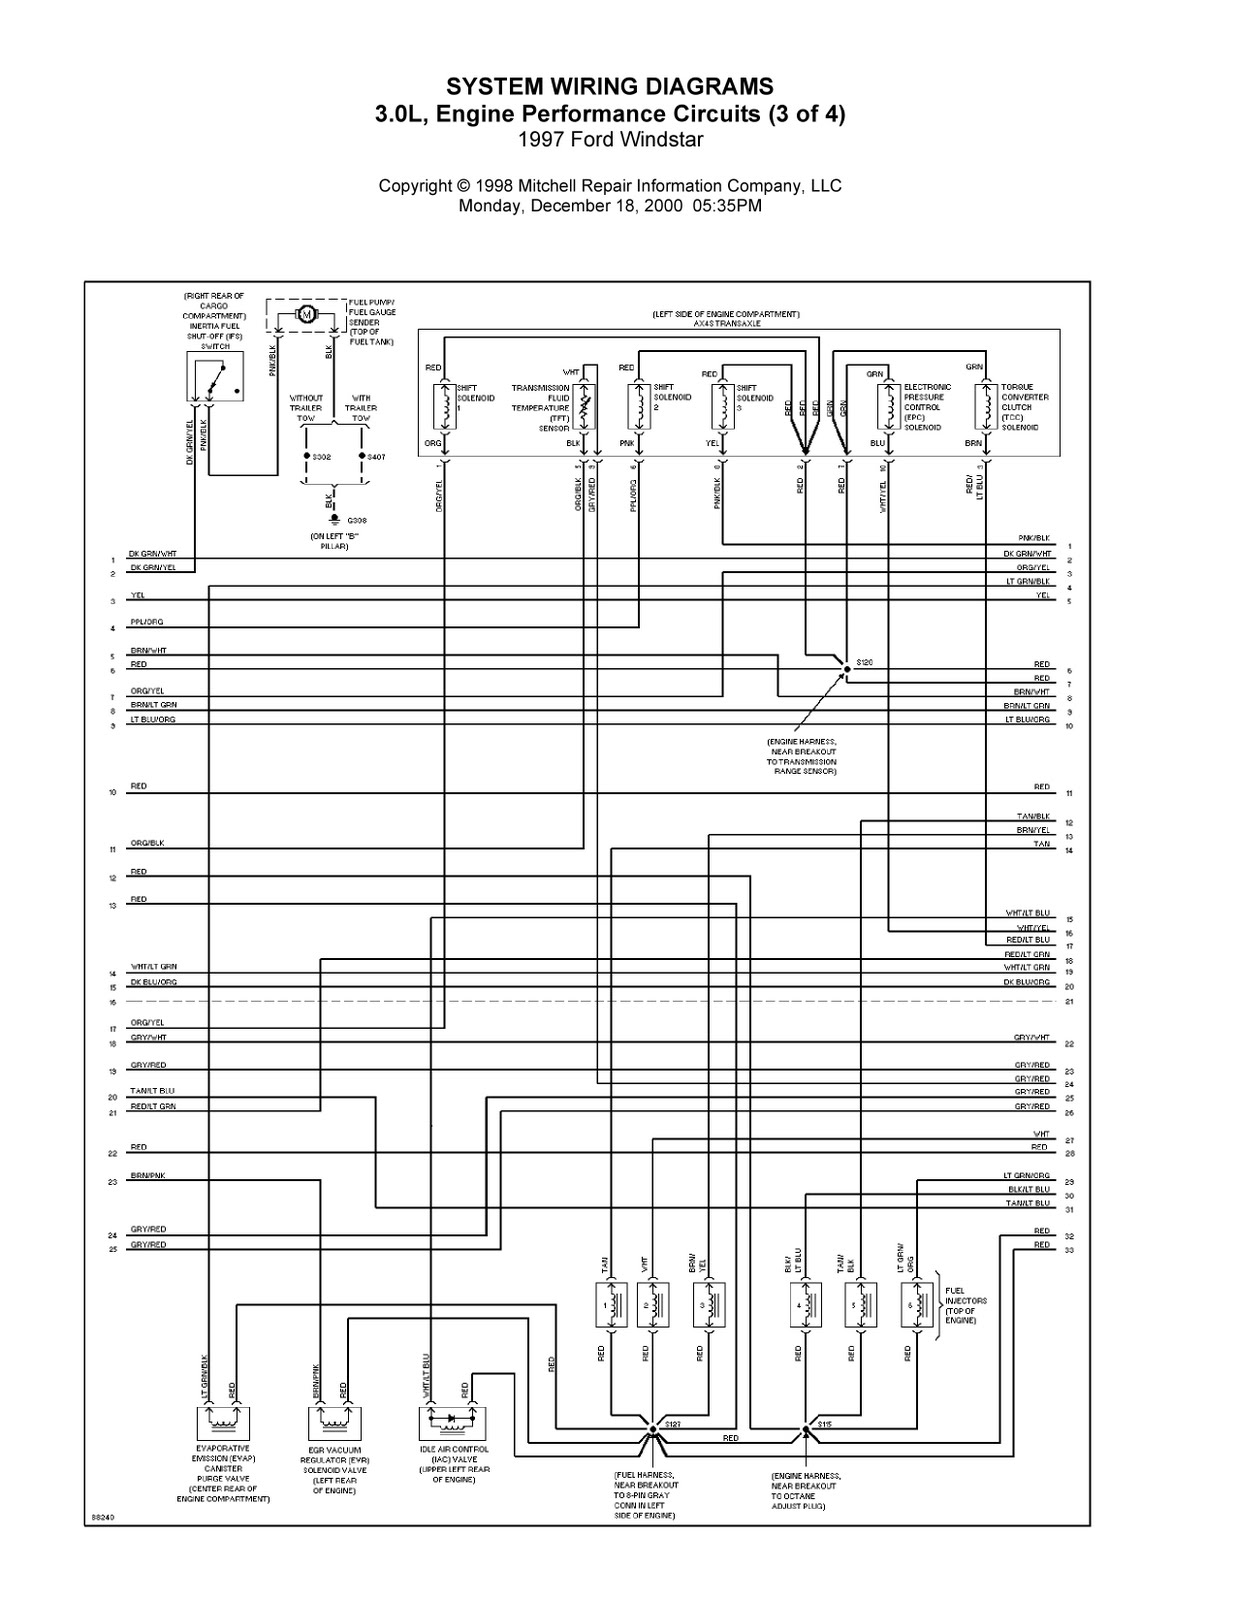 Ford Windstar Wiring Schematic